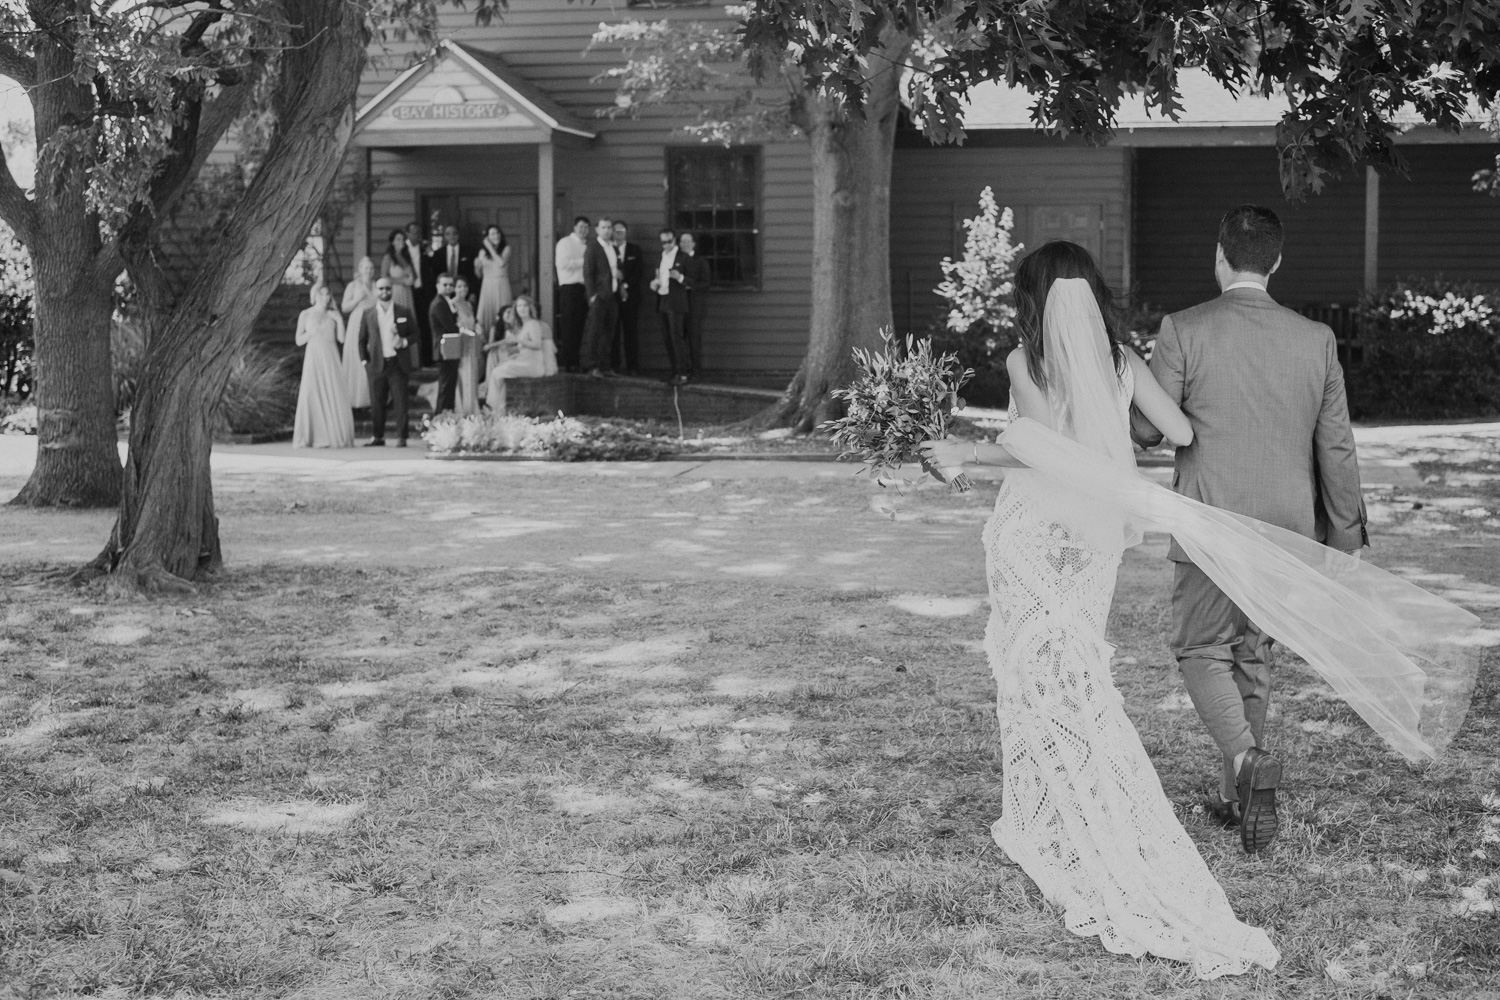 bride and groom walk towards wedding party after first look across a field